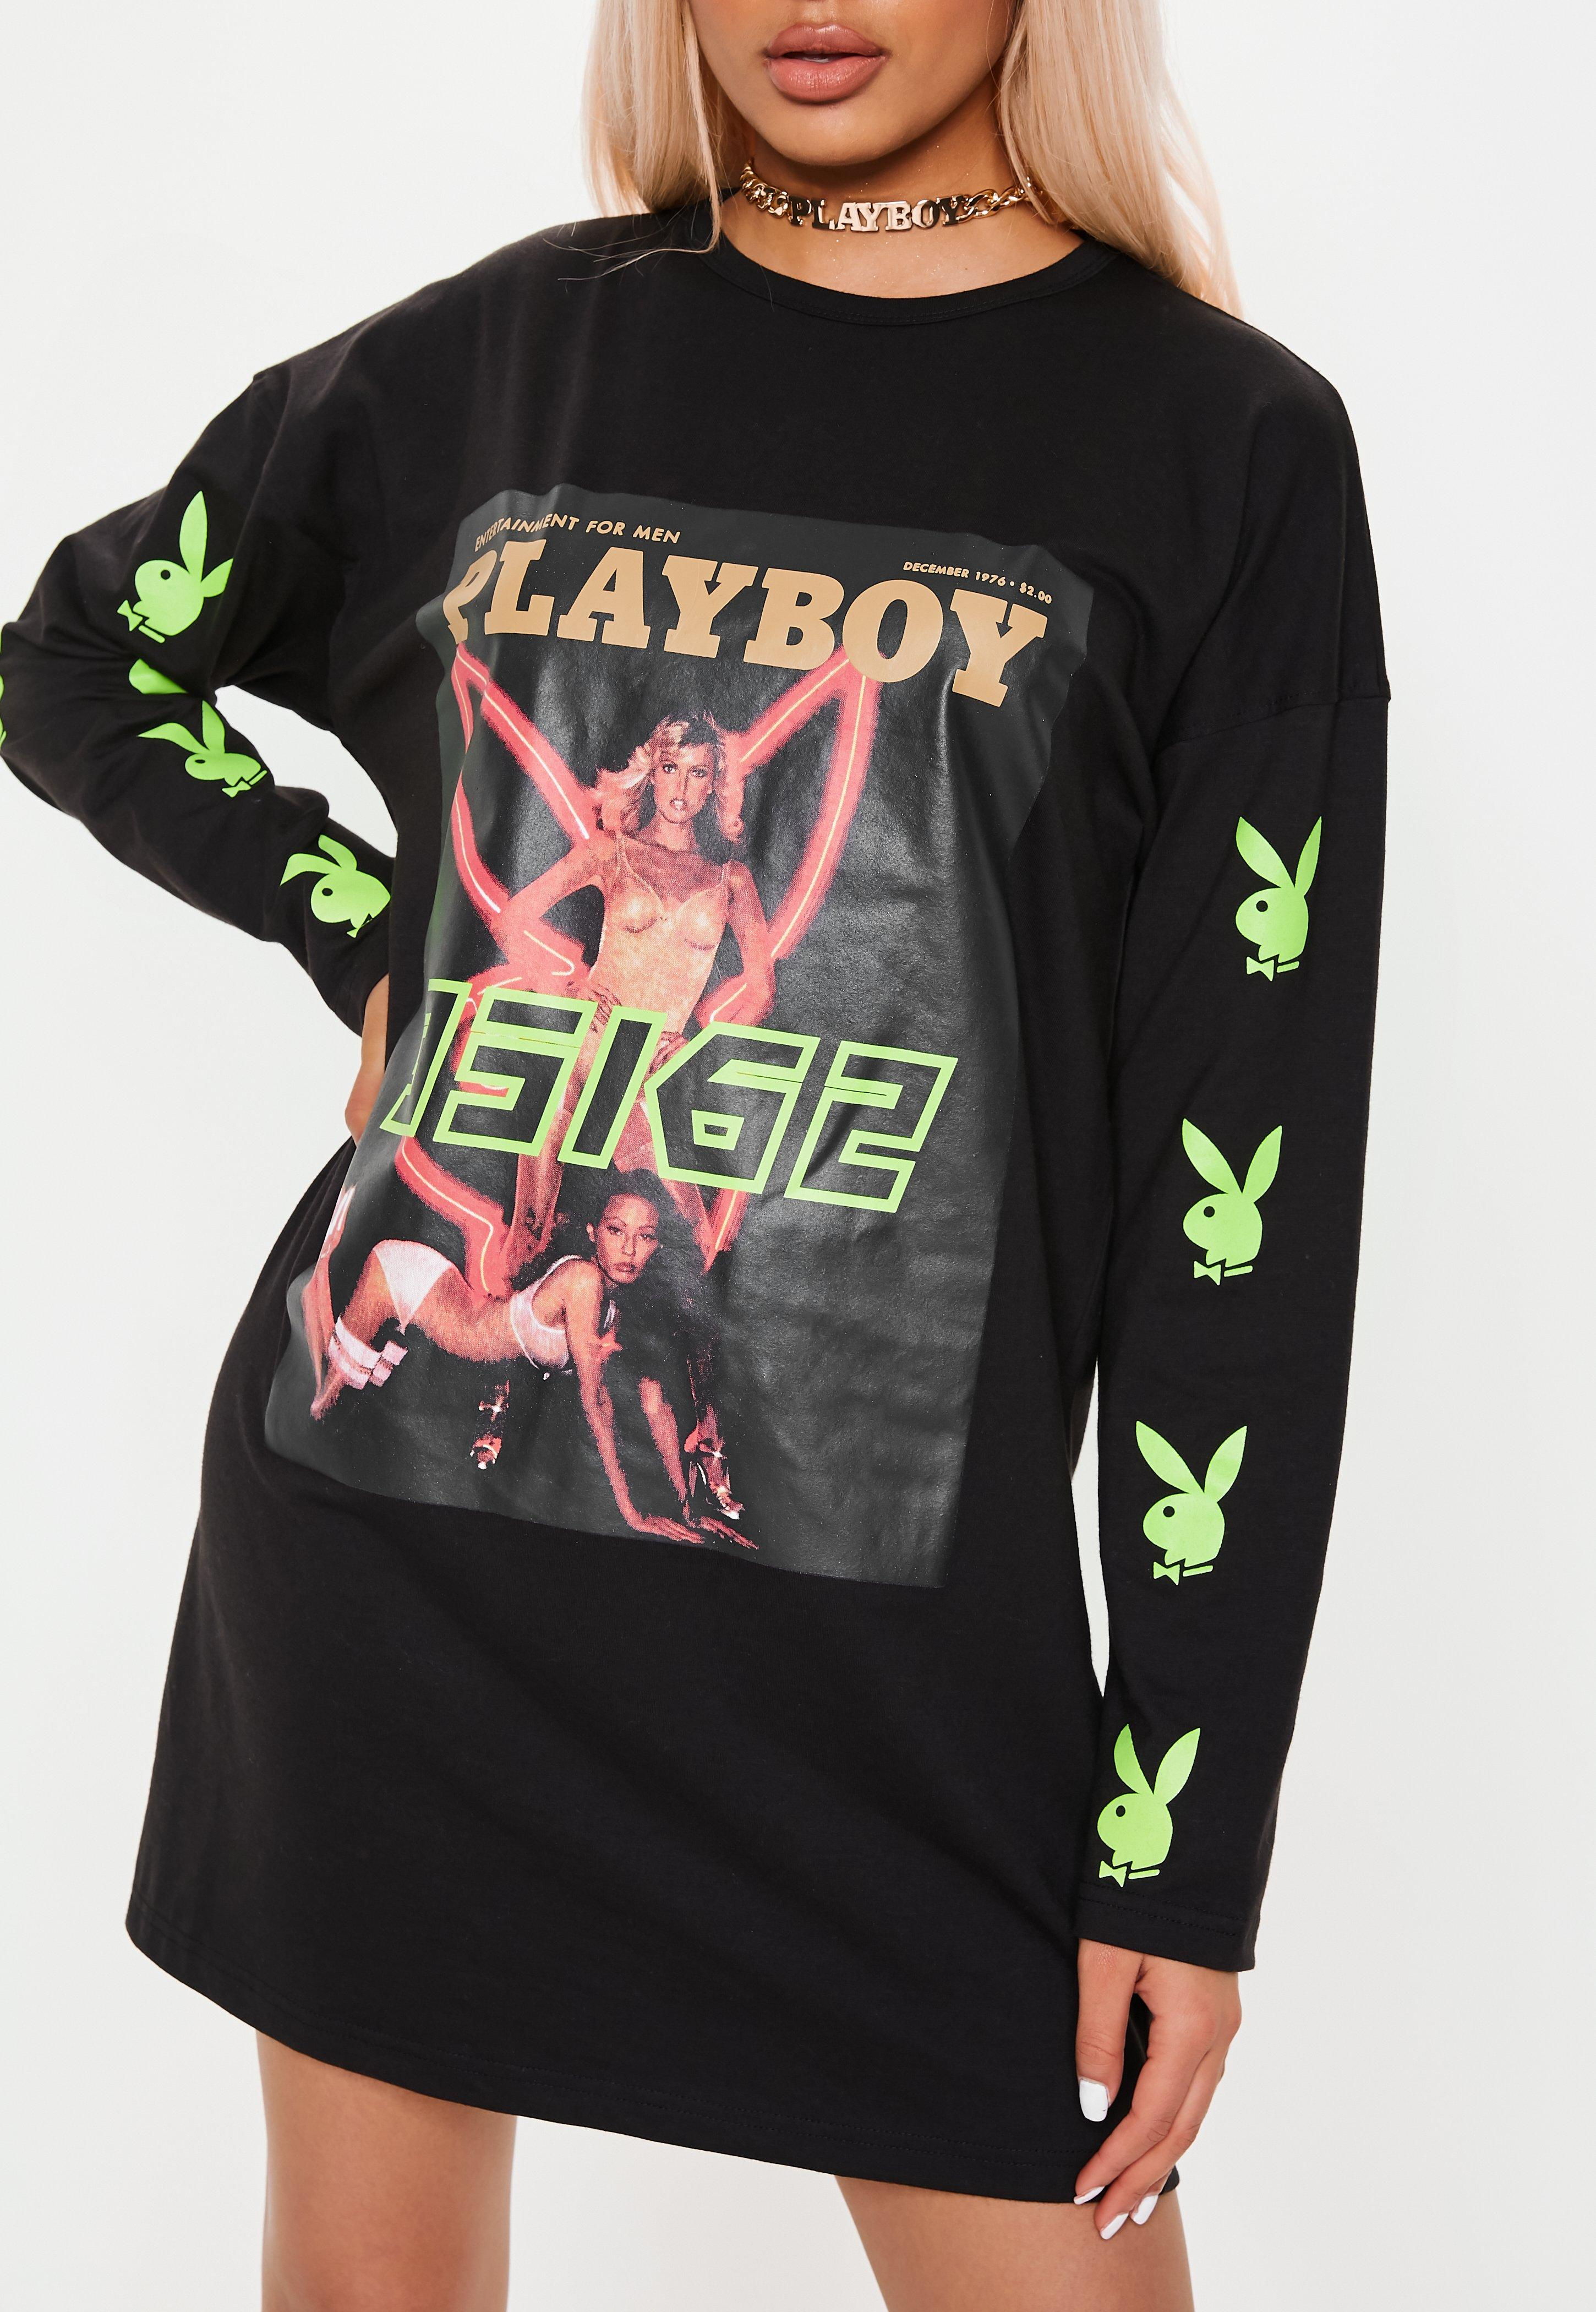 72e99397a3 Playboy X White Neon Bunny Graphic T Shirt Tops